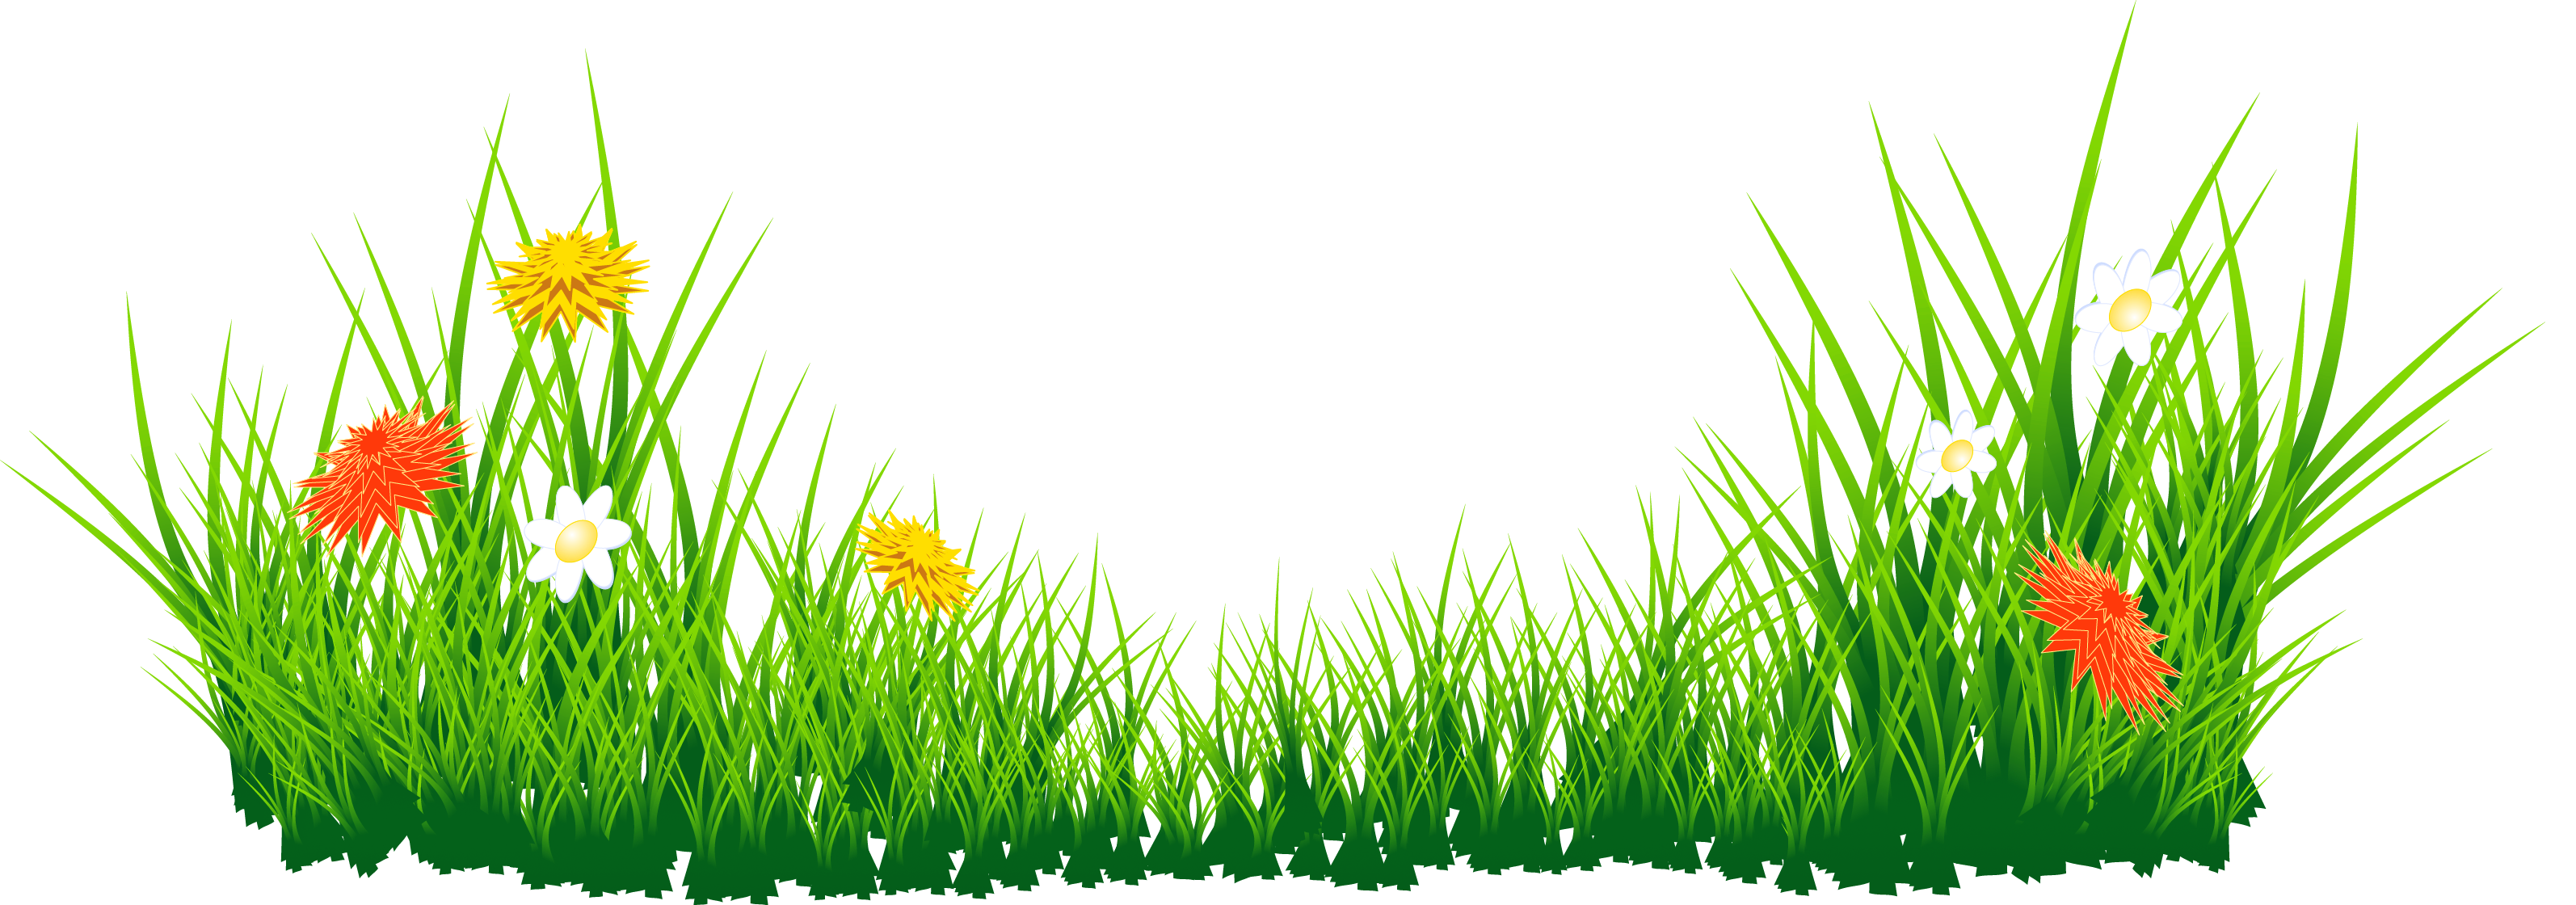 Easter eggs in grass border png. Blog great day promotion